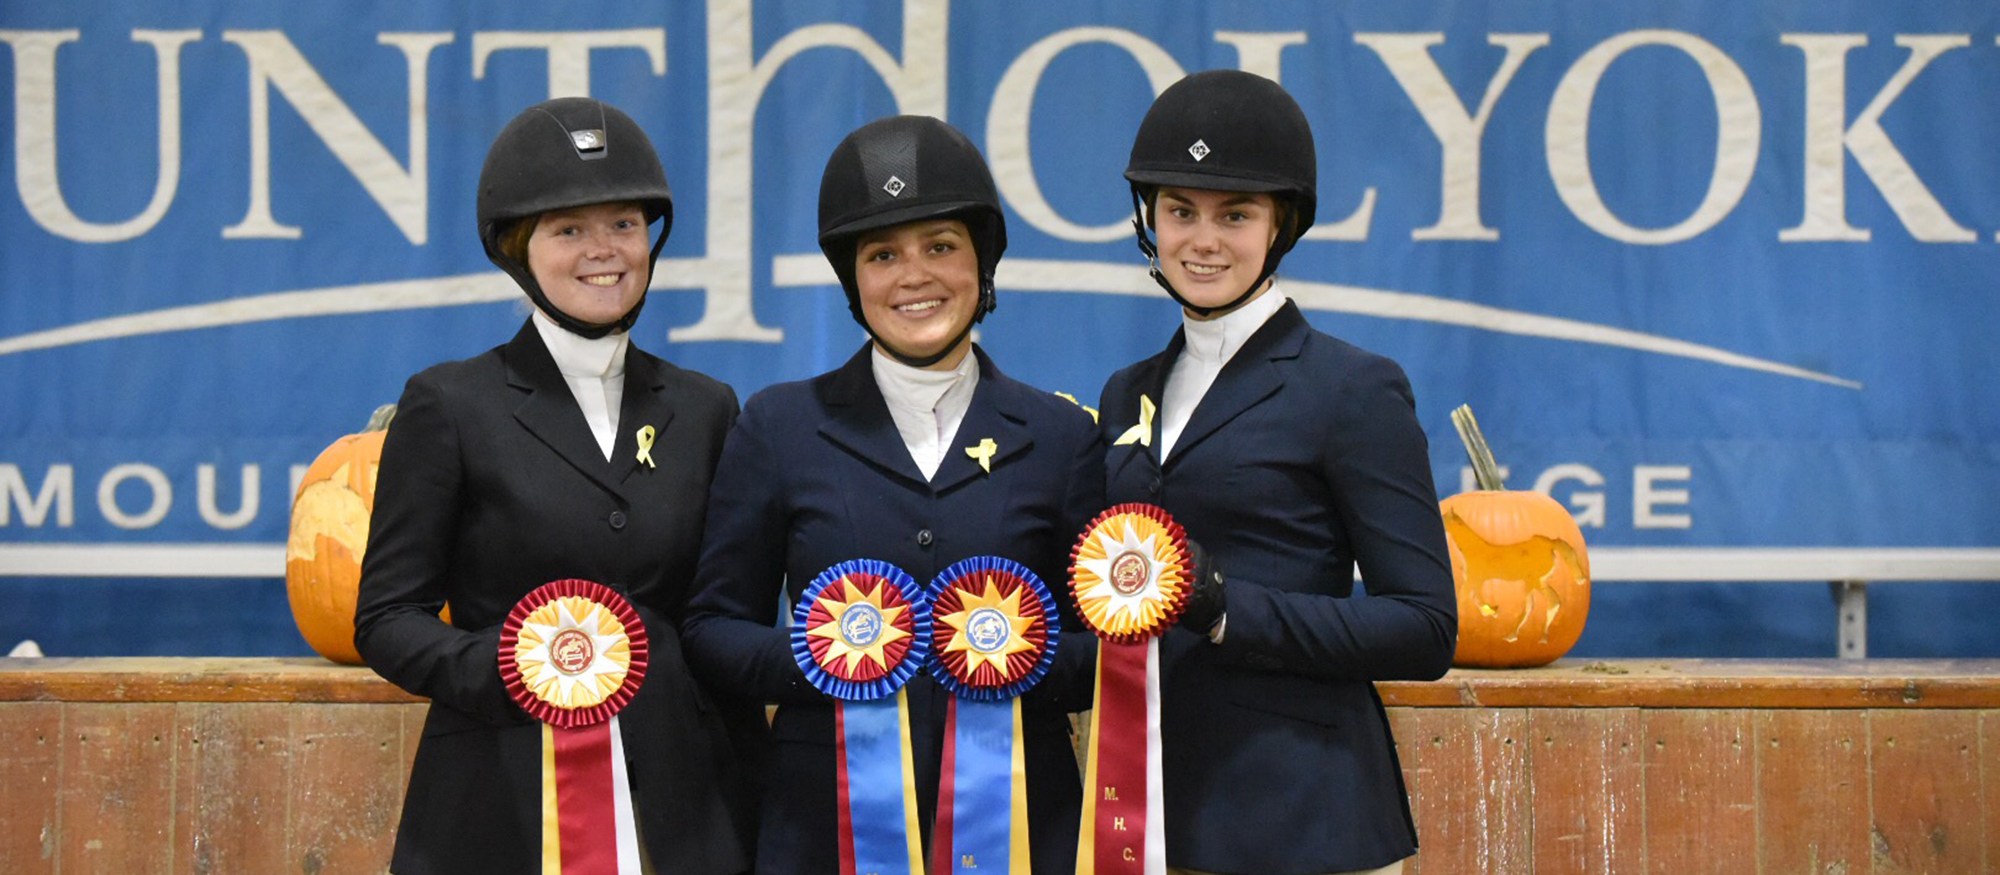 Photo of Lyons riding student-athletes Sara Hearn, Indra Rapinchuk-Souccar and Sierra Dunn following the October 27th, 2018 Home Show.